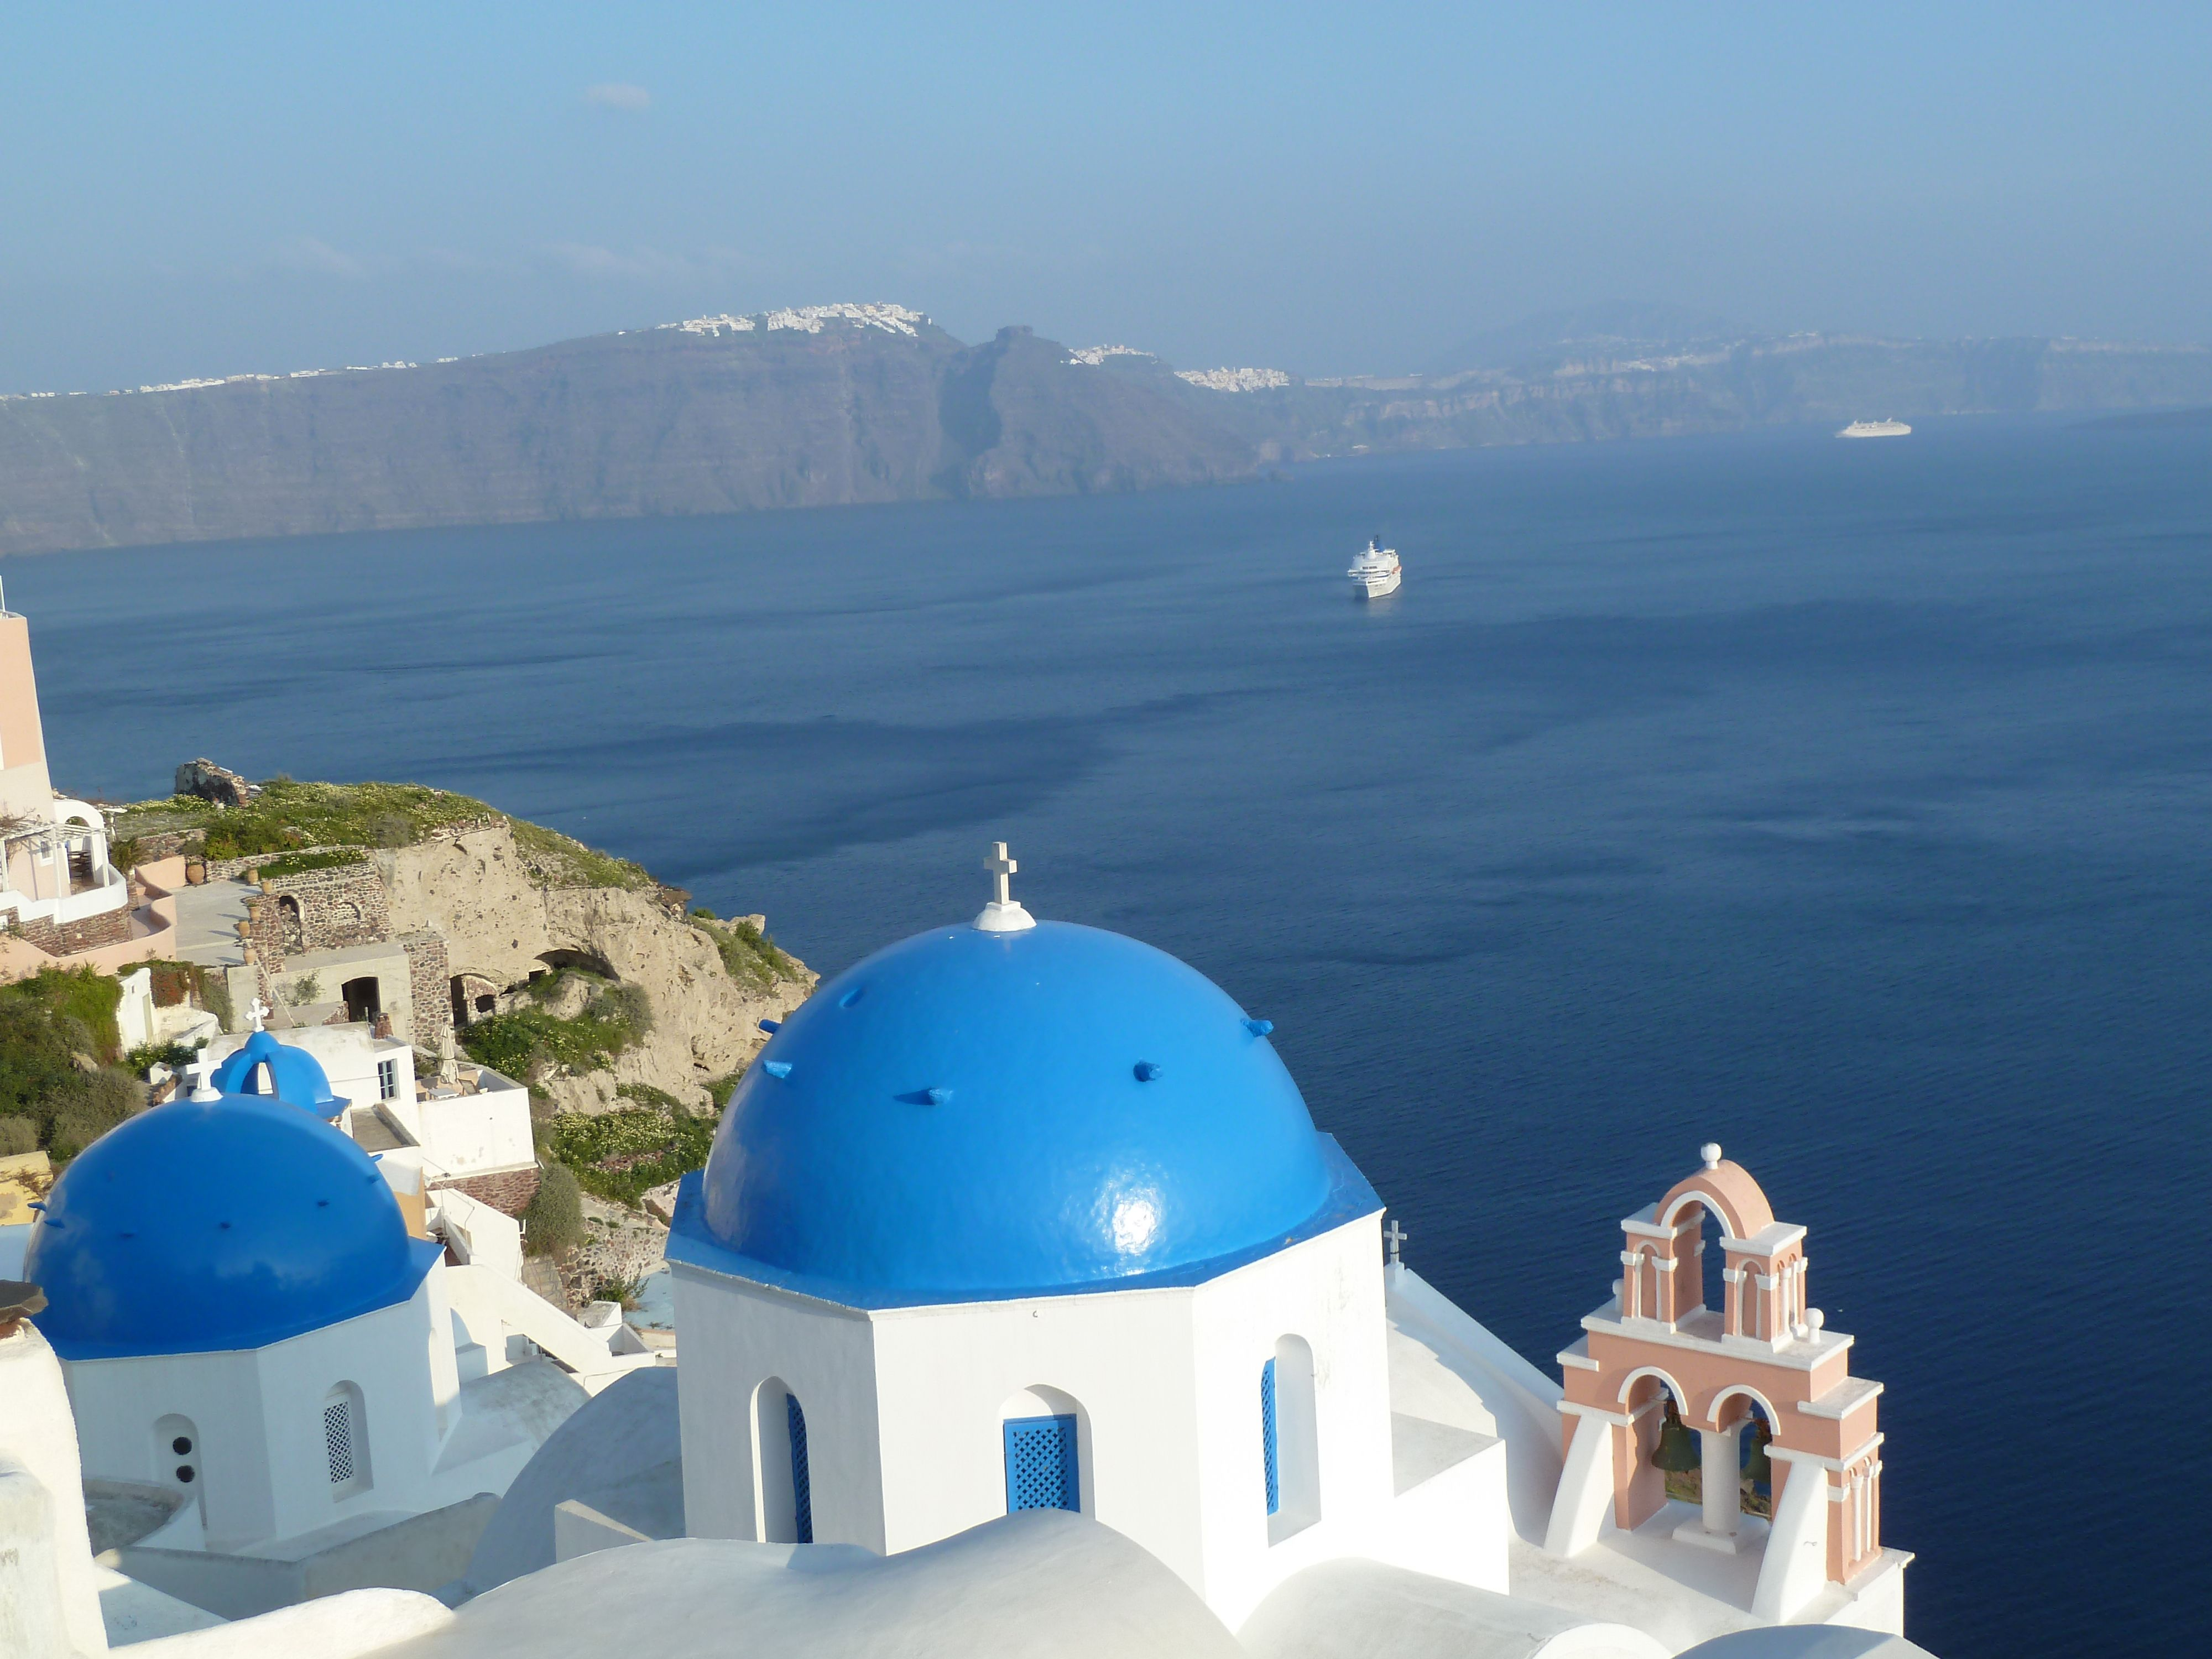 Travelers on our tour of Greece will enjoy an unforgettable walk on the island of Santorini.   This walk is included in the Greece-Mediterranean Antiquities 2018 tour. To find out more, check out our website at: www.walkingadventures.com.  #culture #travel #Tour #tourism #vacation #trip #destination #bucketlist #beforeIdie #wanderlust #WalkingAdventures #WalkingAdventuresInternational #Greece #Santorini #Mediterranean #Walkingtour #Adventuretravel